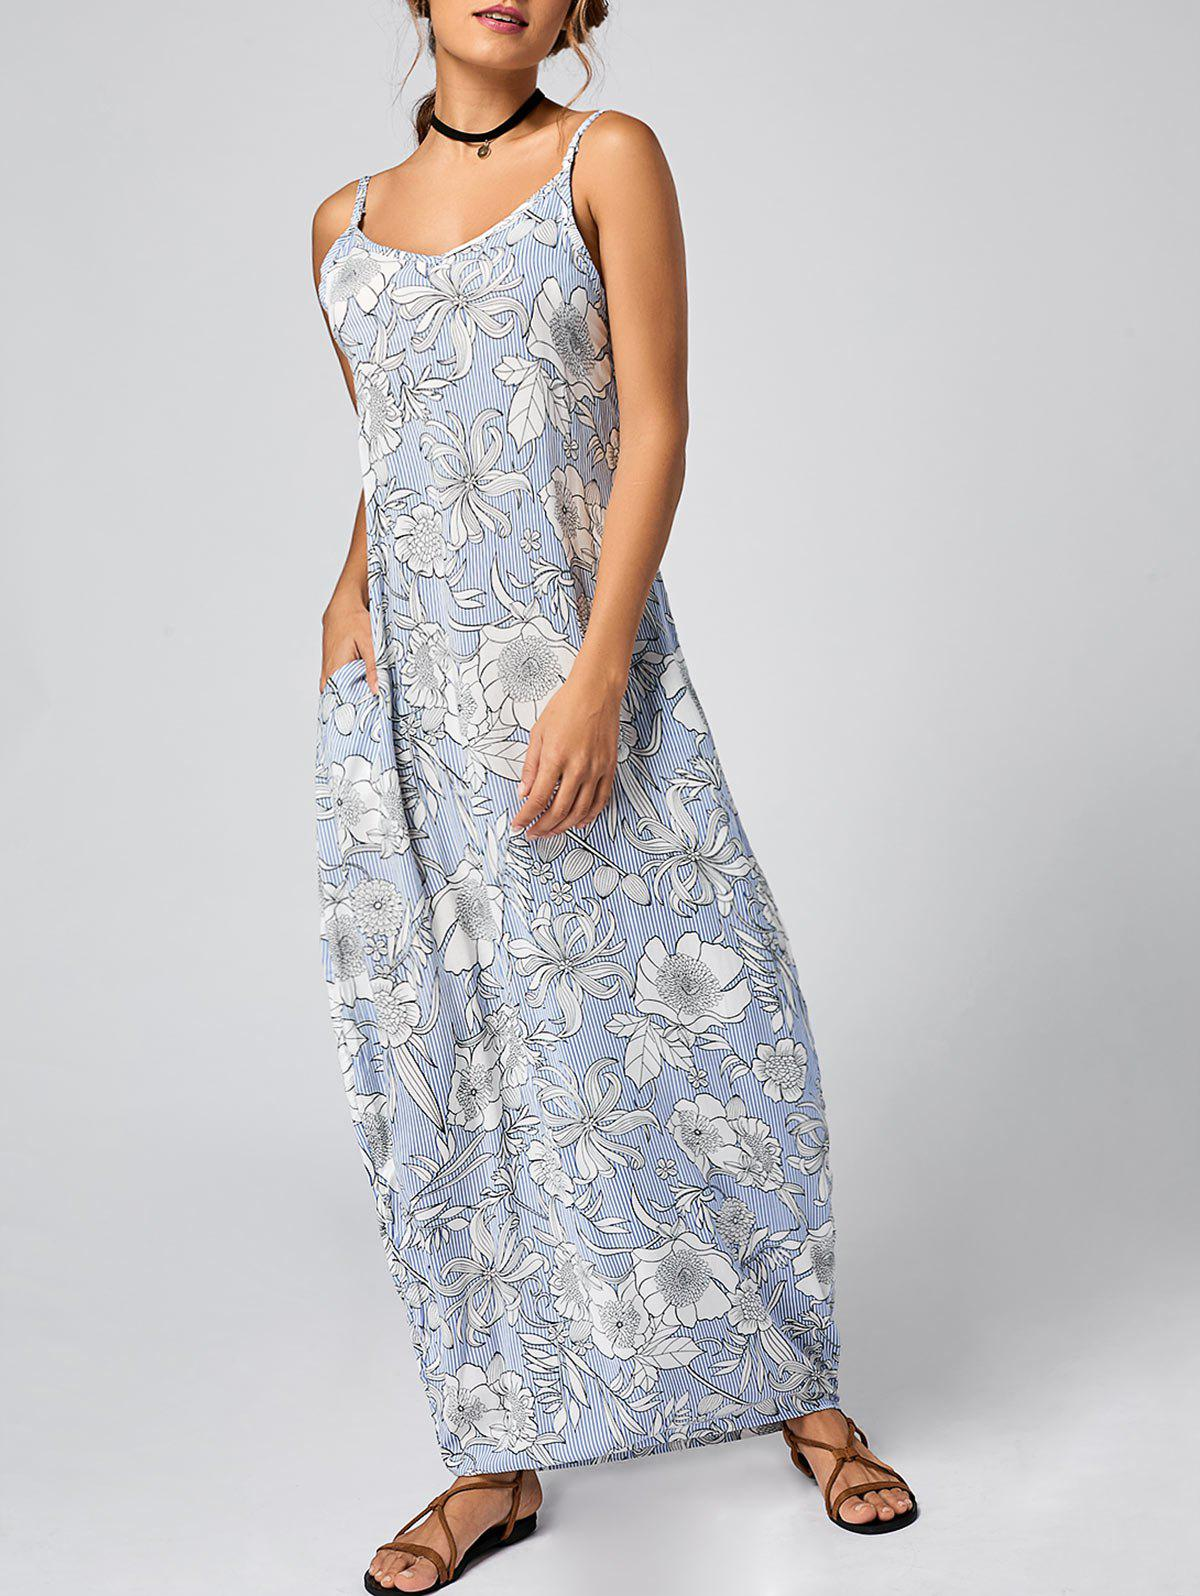 Floral Striped Maxi Slip Dress - LIGHT BLUE S